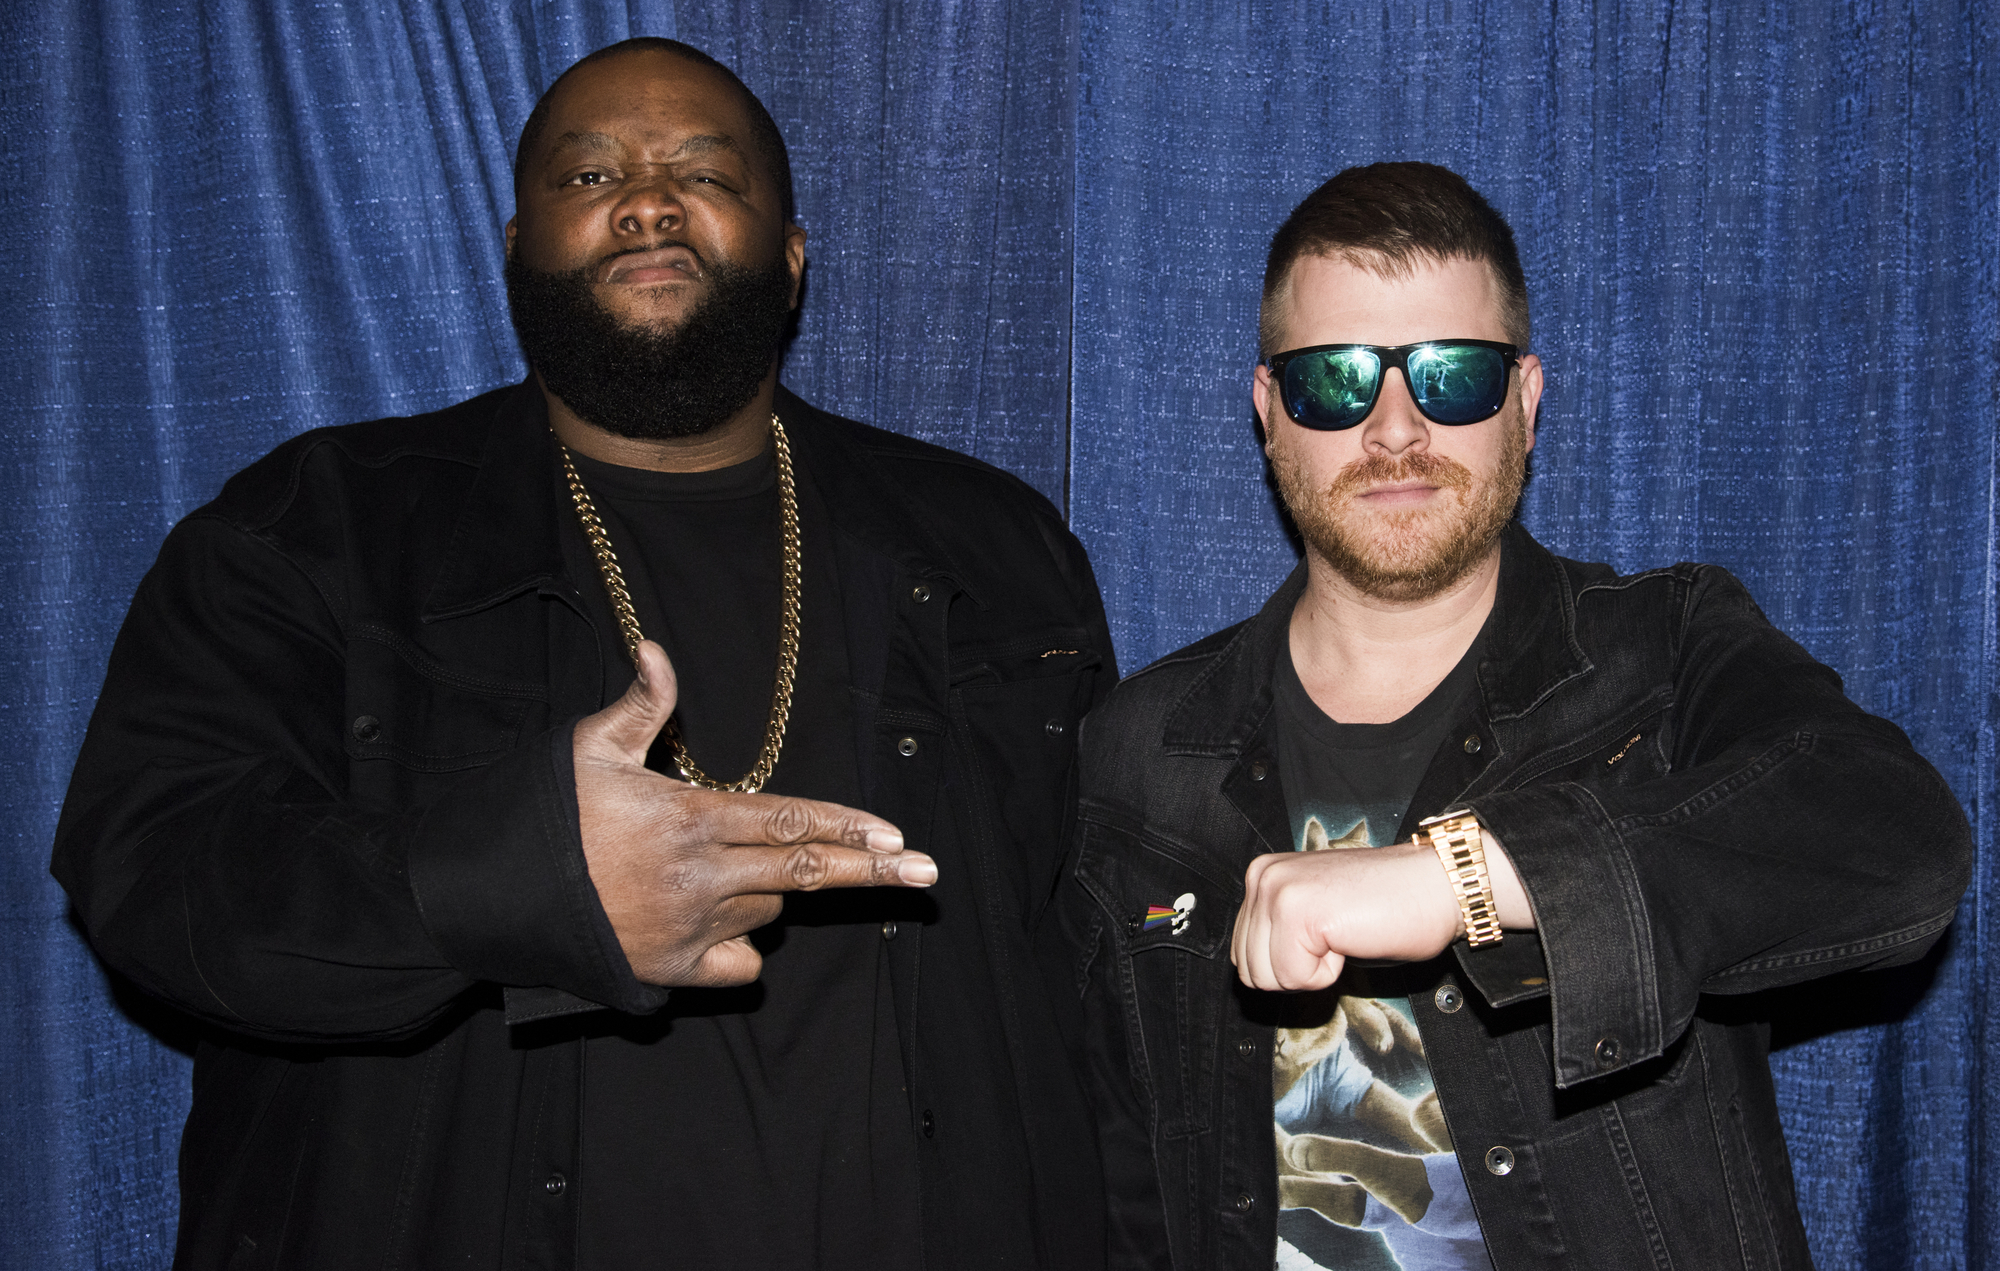 Run The Jewels - 'Ooh LA LA' (Feat. DJ Premier & Greg Nice)